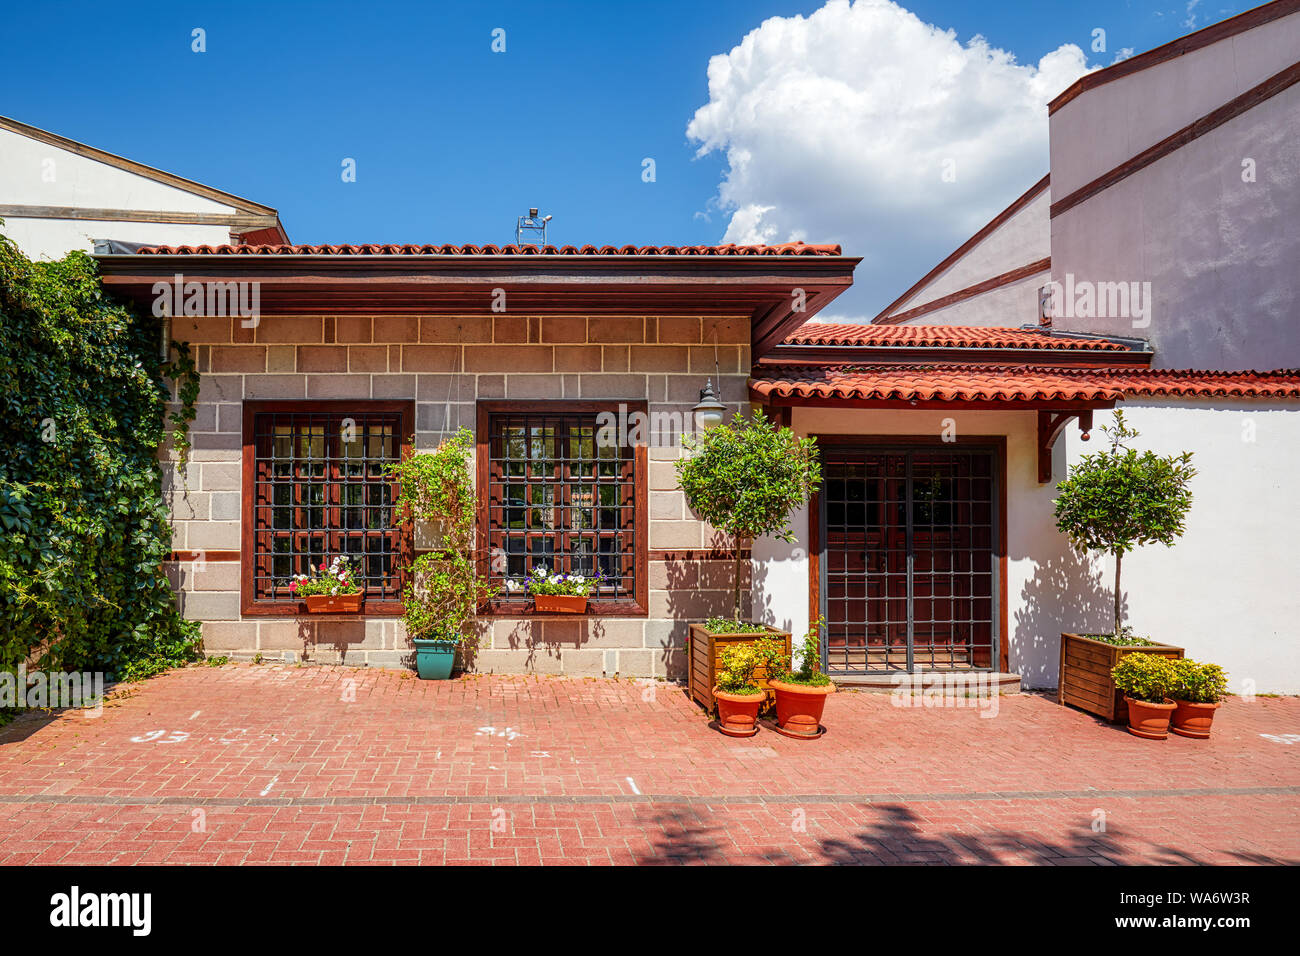 Exterior of historical Turkish restoration houses in Hamamonu district in Altindag, Ankara, Turkey. Stock Photo